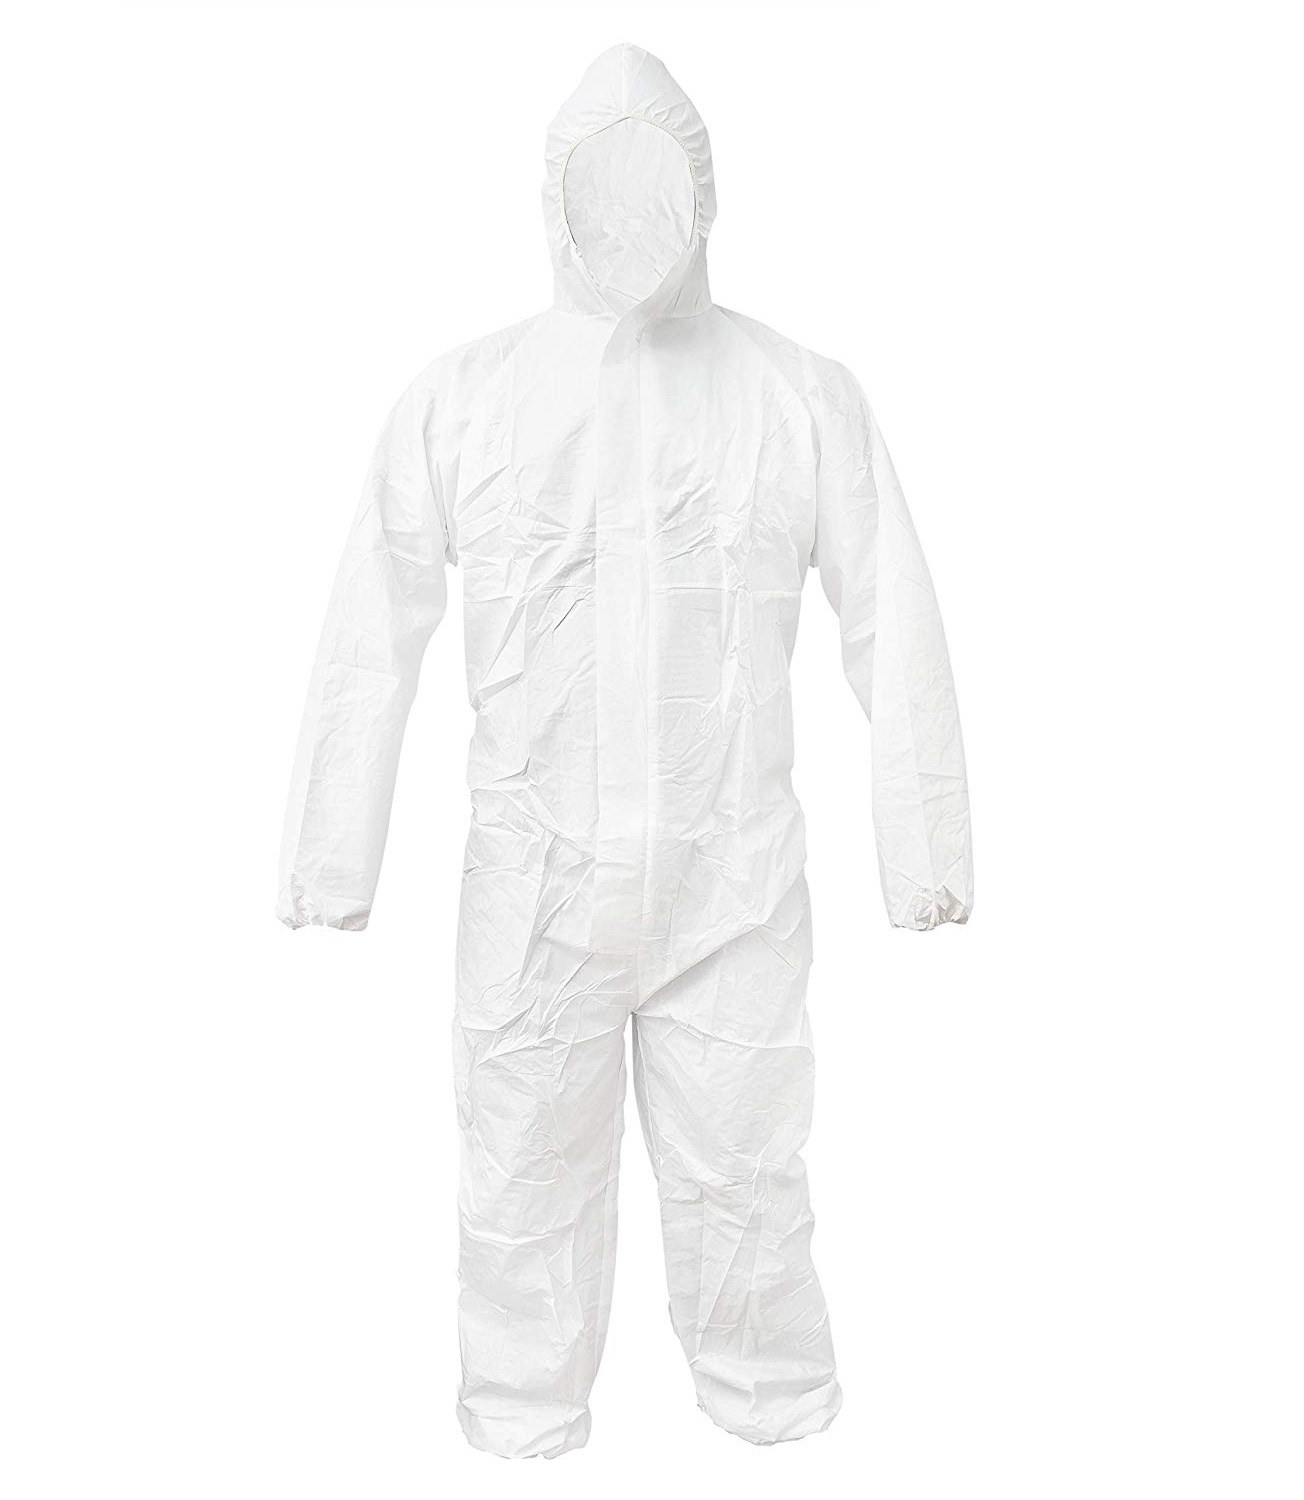 Disposable protective suit Overall White Protective clothing